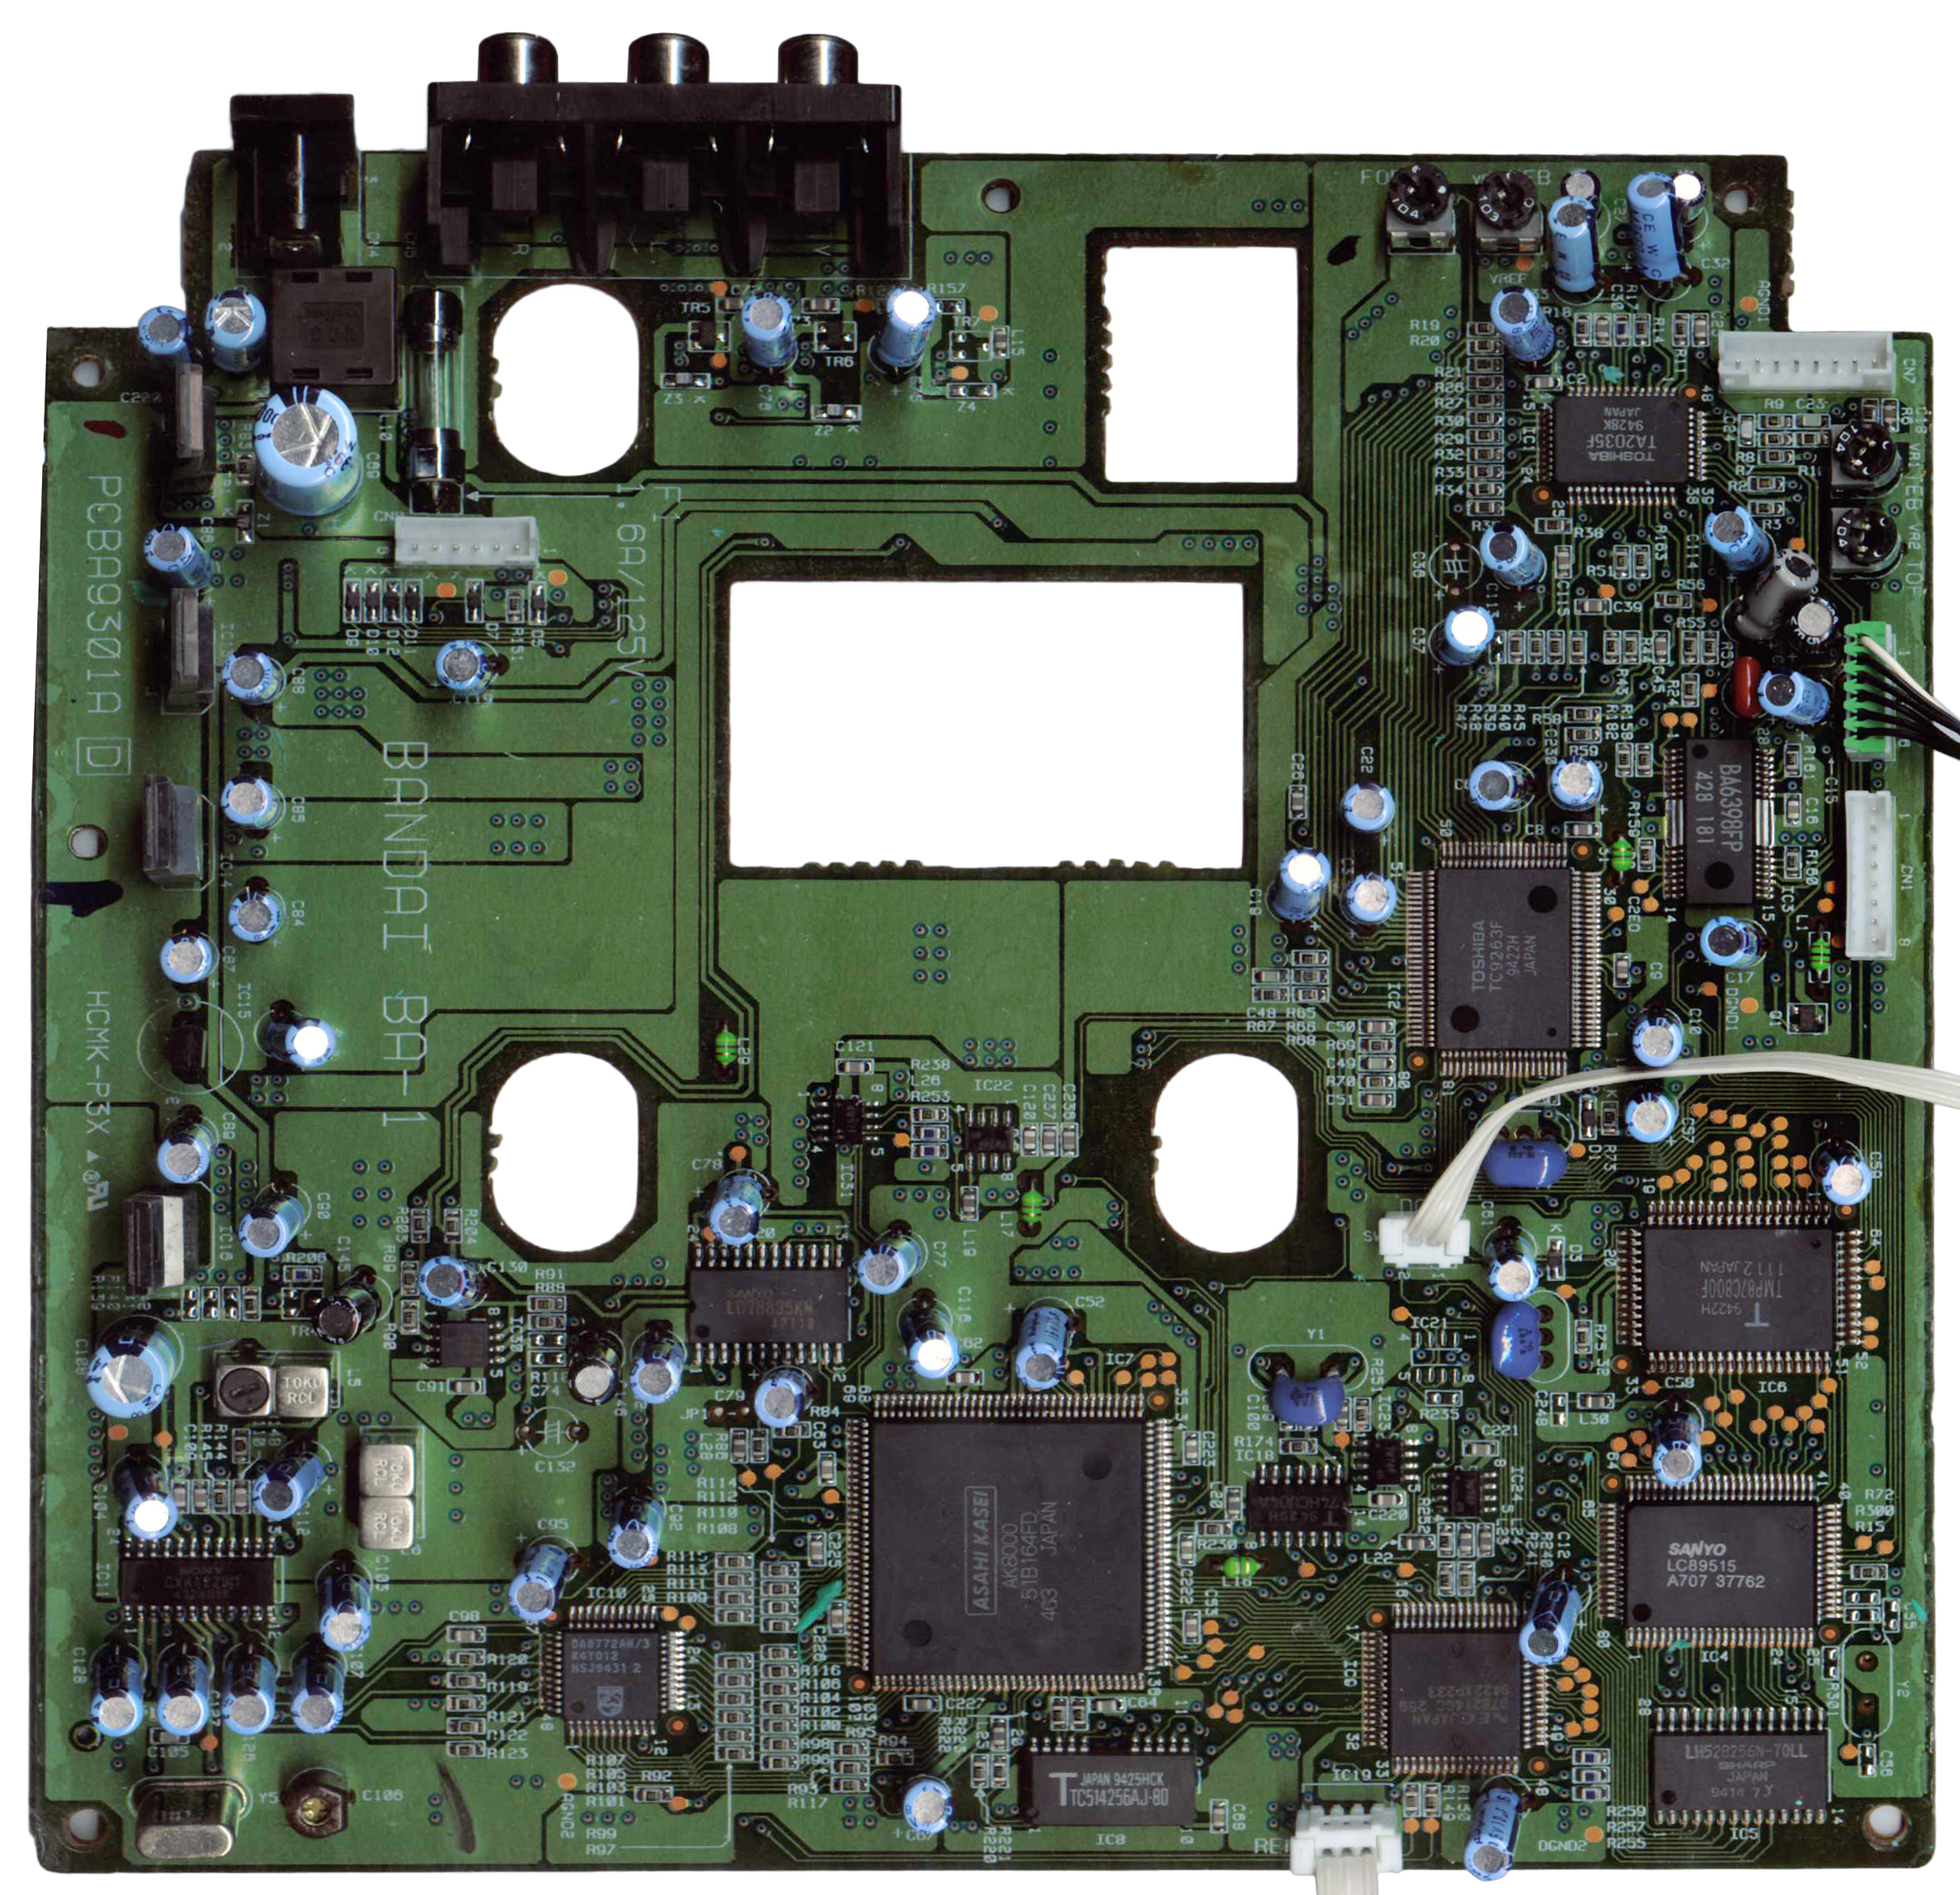 https://upload.wikimedia.org/wikipedia/commons/9/9c/Playdia-pcb.jpg